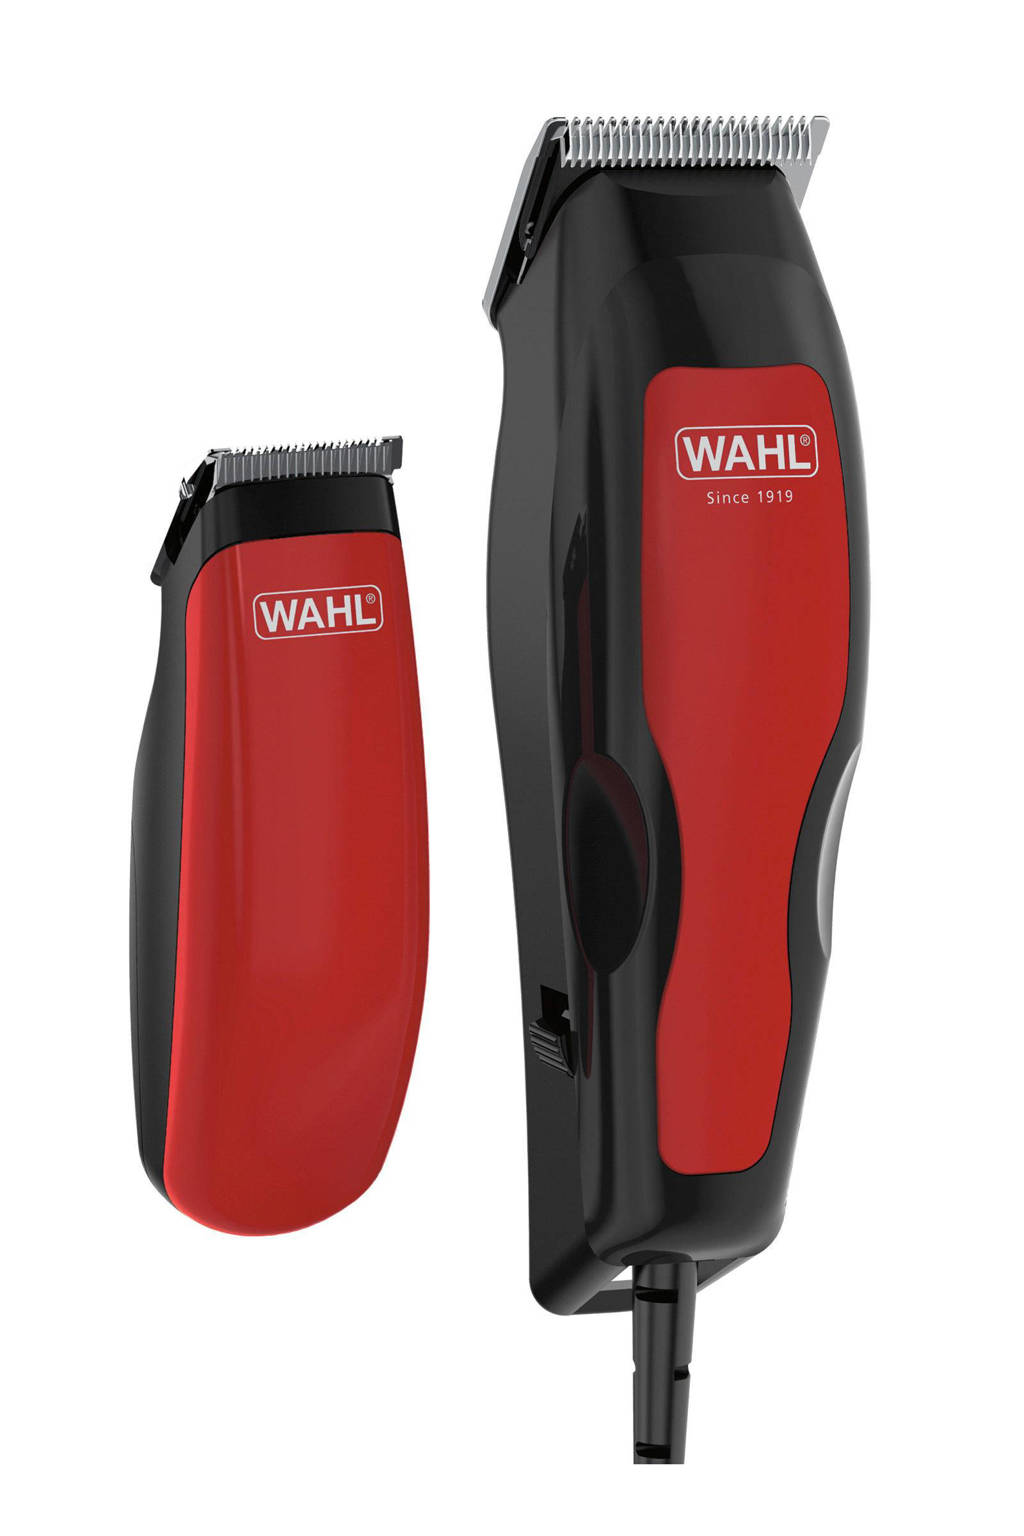 Wahl Home Pro 100 Combo trimmer & tondeuse